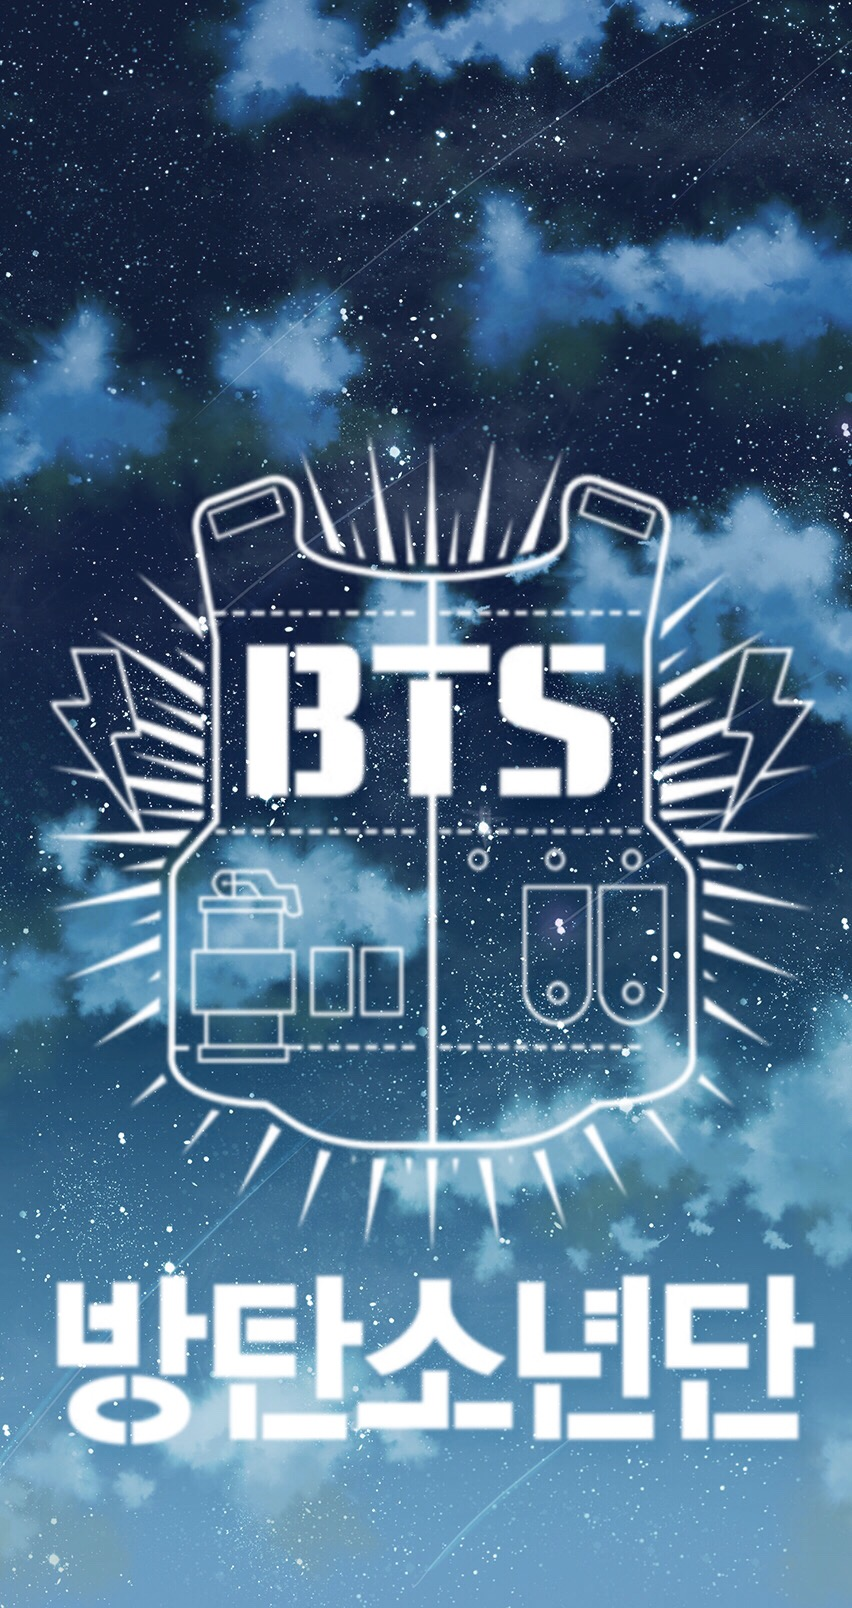 53 Bts Wallpaper On Wallpapersafari